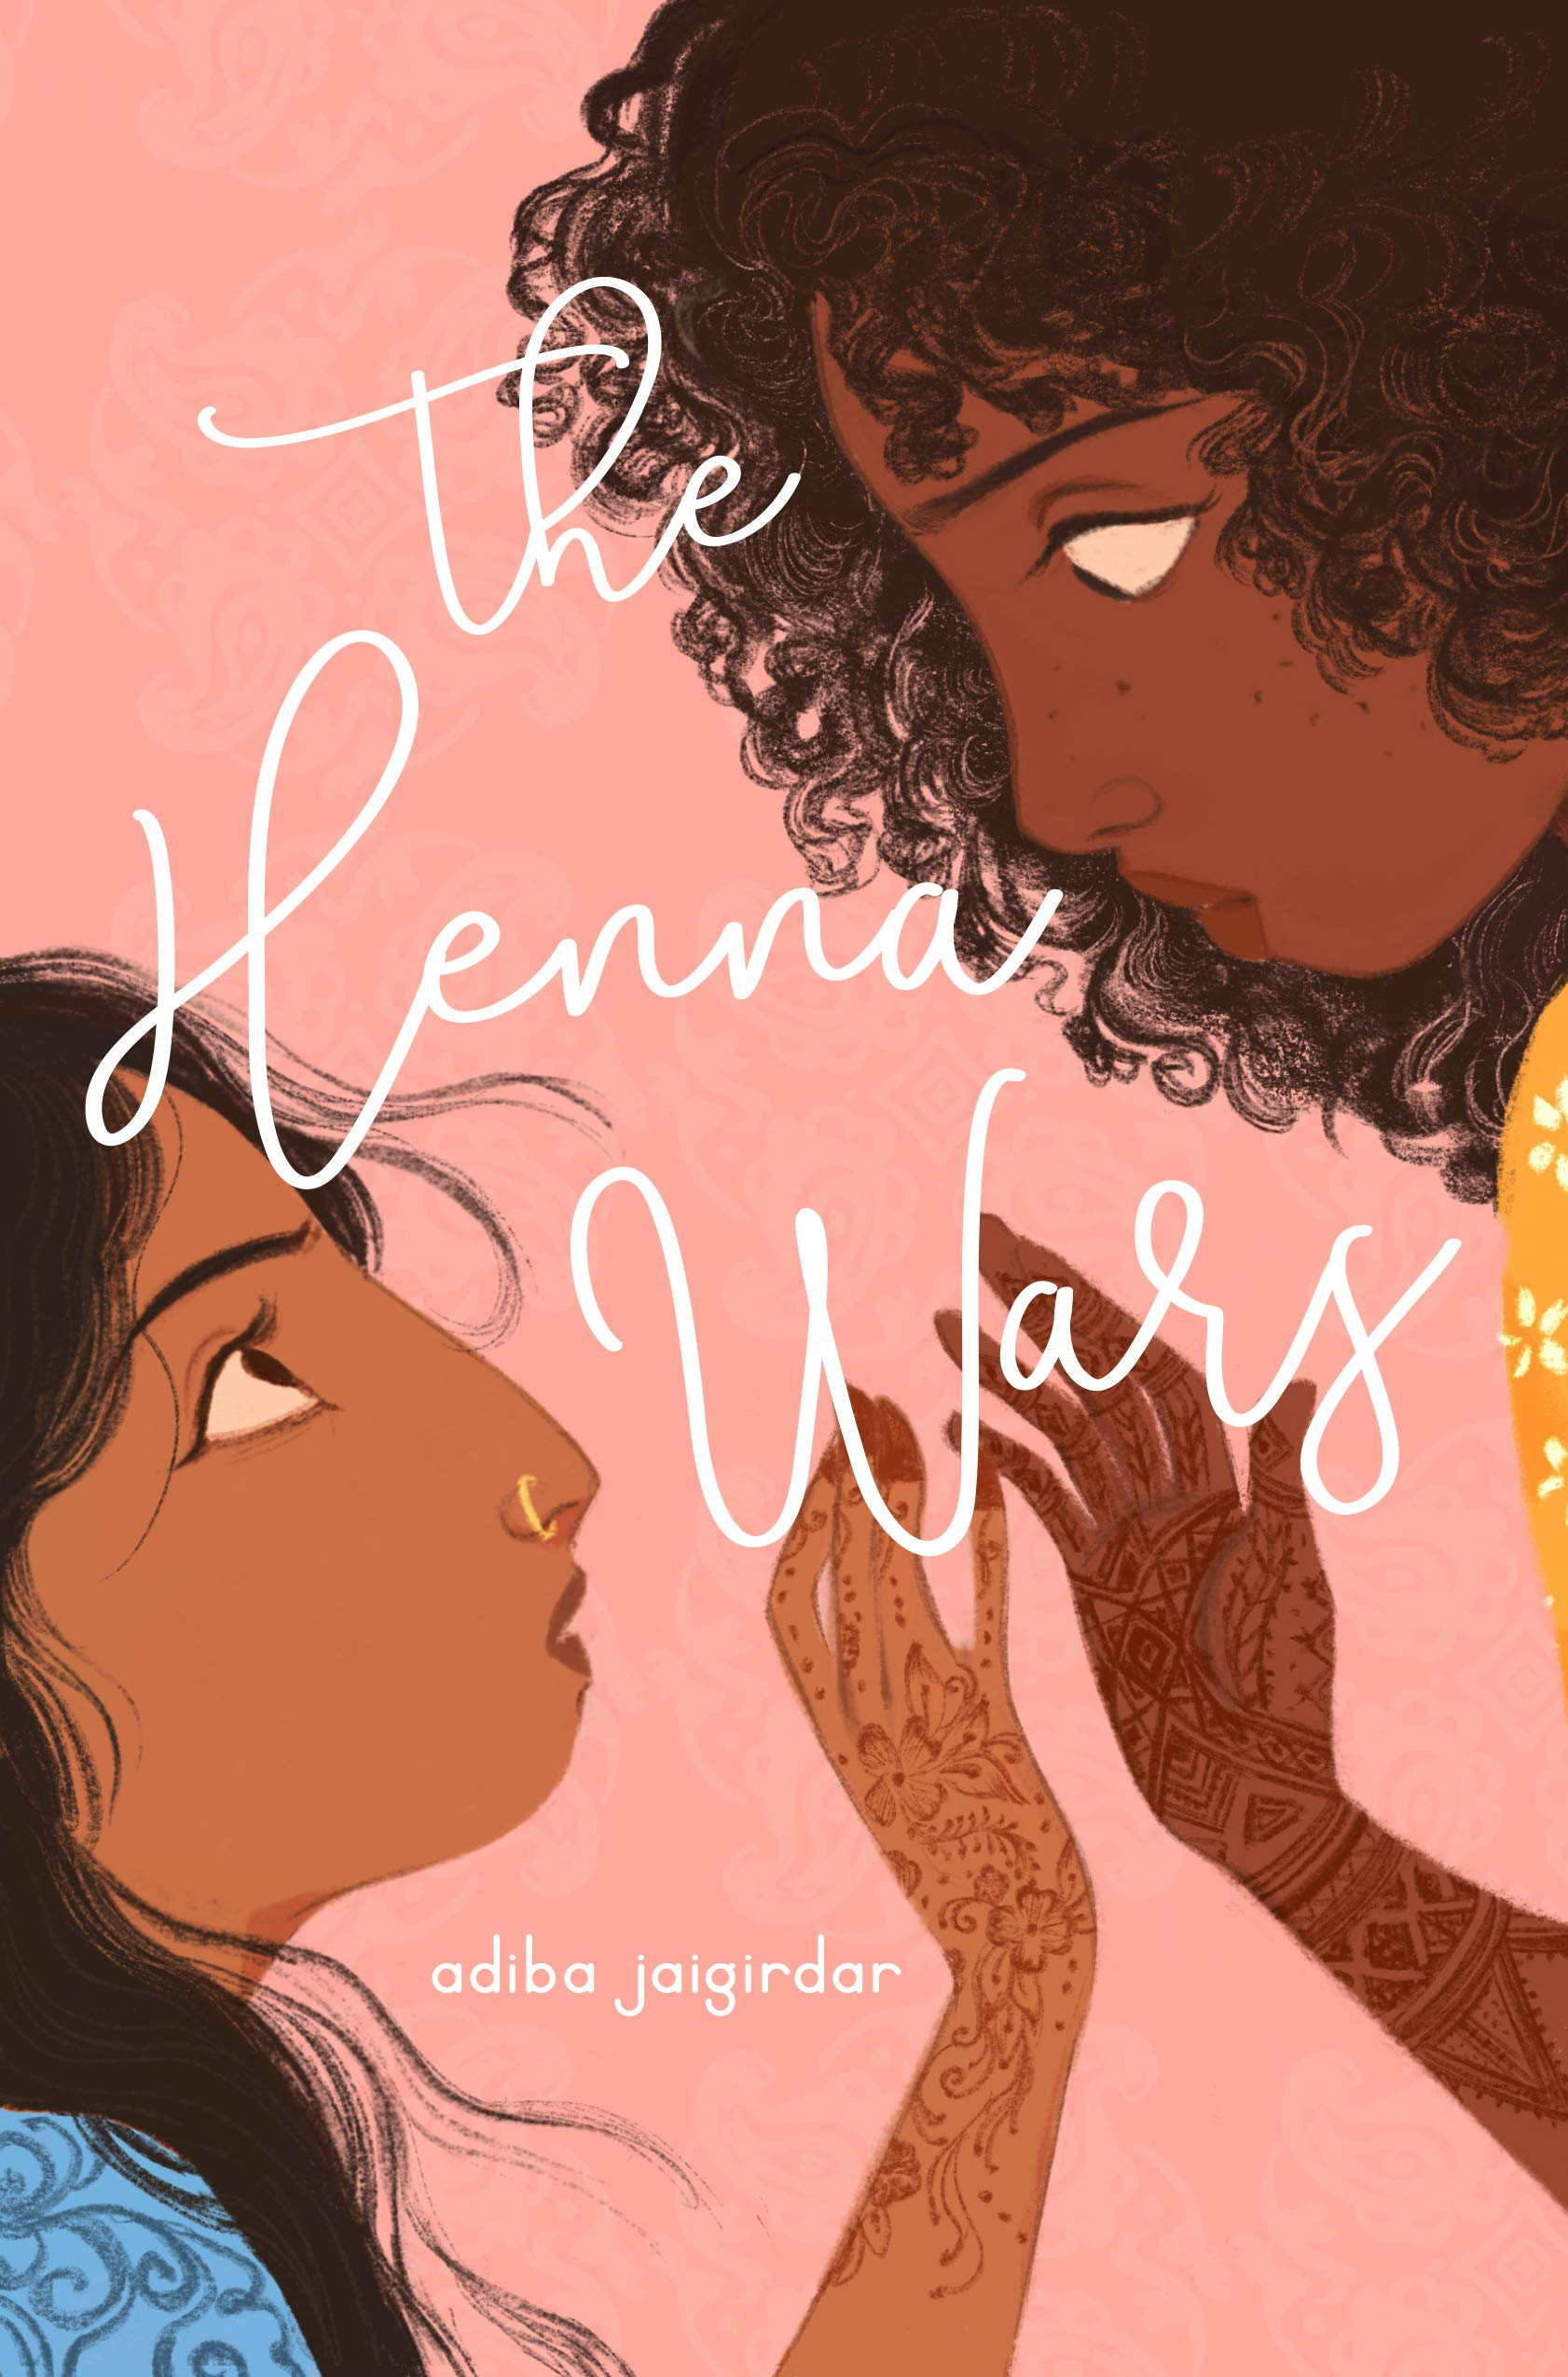 Amazon.com: The Henna Wars (9781624149689): Jaigirdar, Adiba: Books